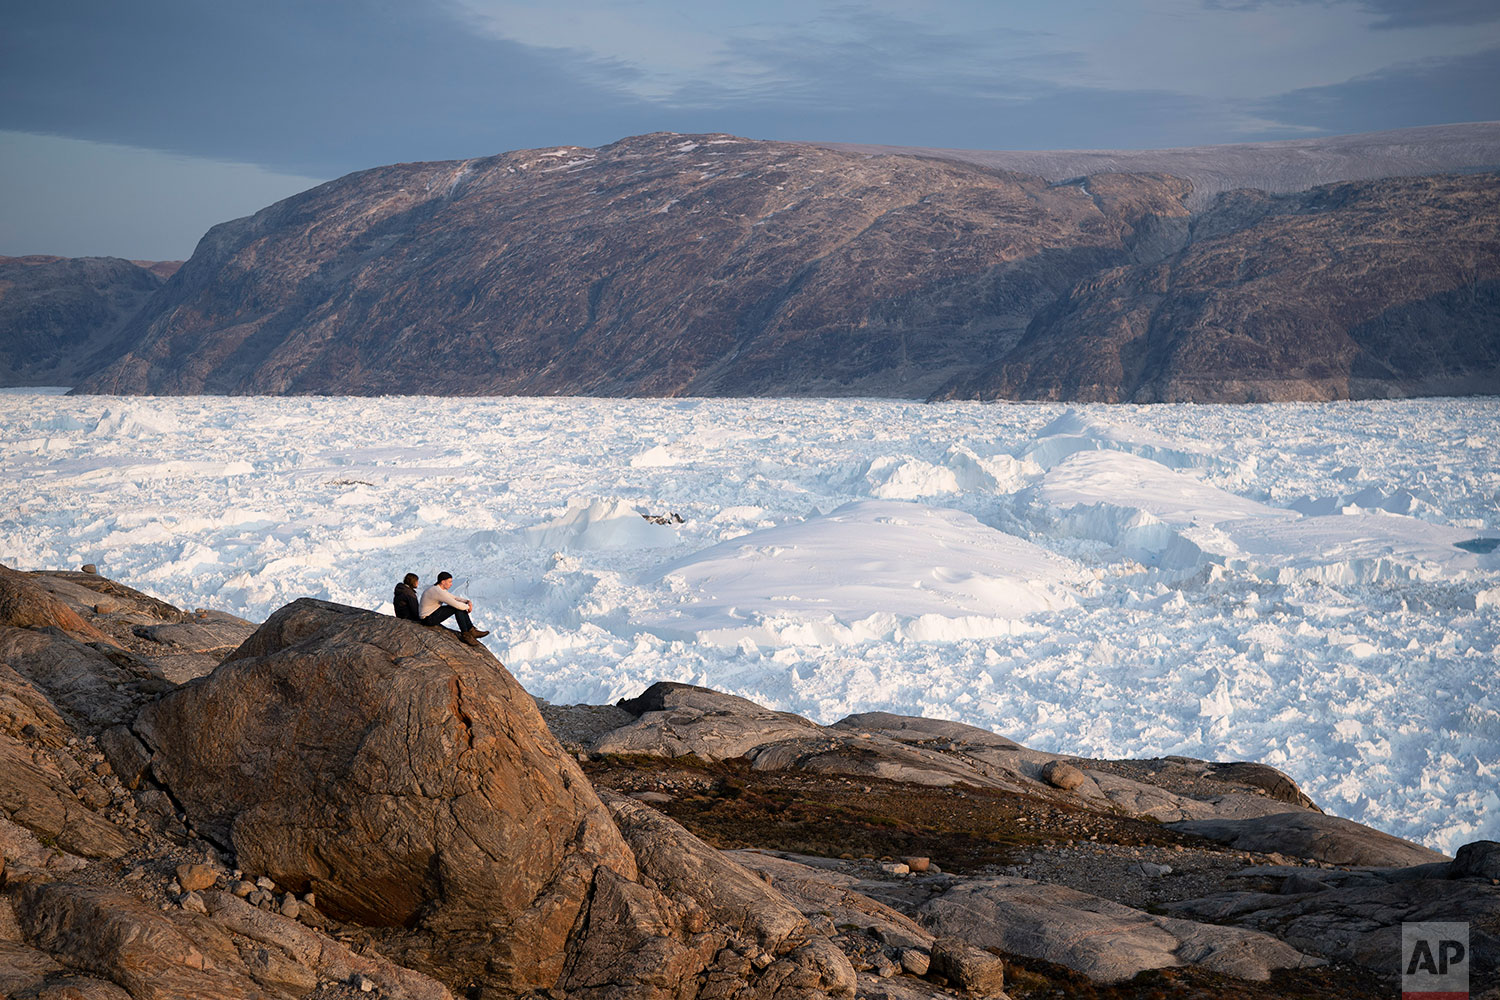 In this Aug. 16, 2019 photo, NYU student researchers sit on top of a rock overlooking the Helheim glacier in Greenland. (AP Photo/Felipe Dana)